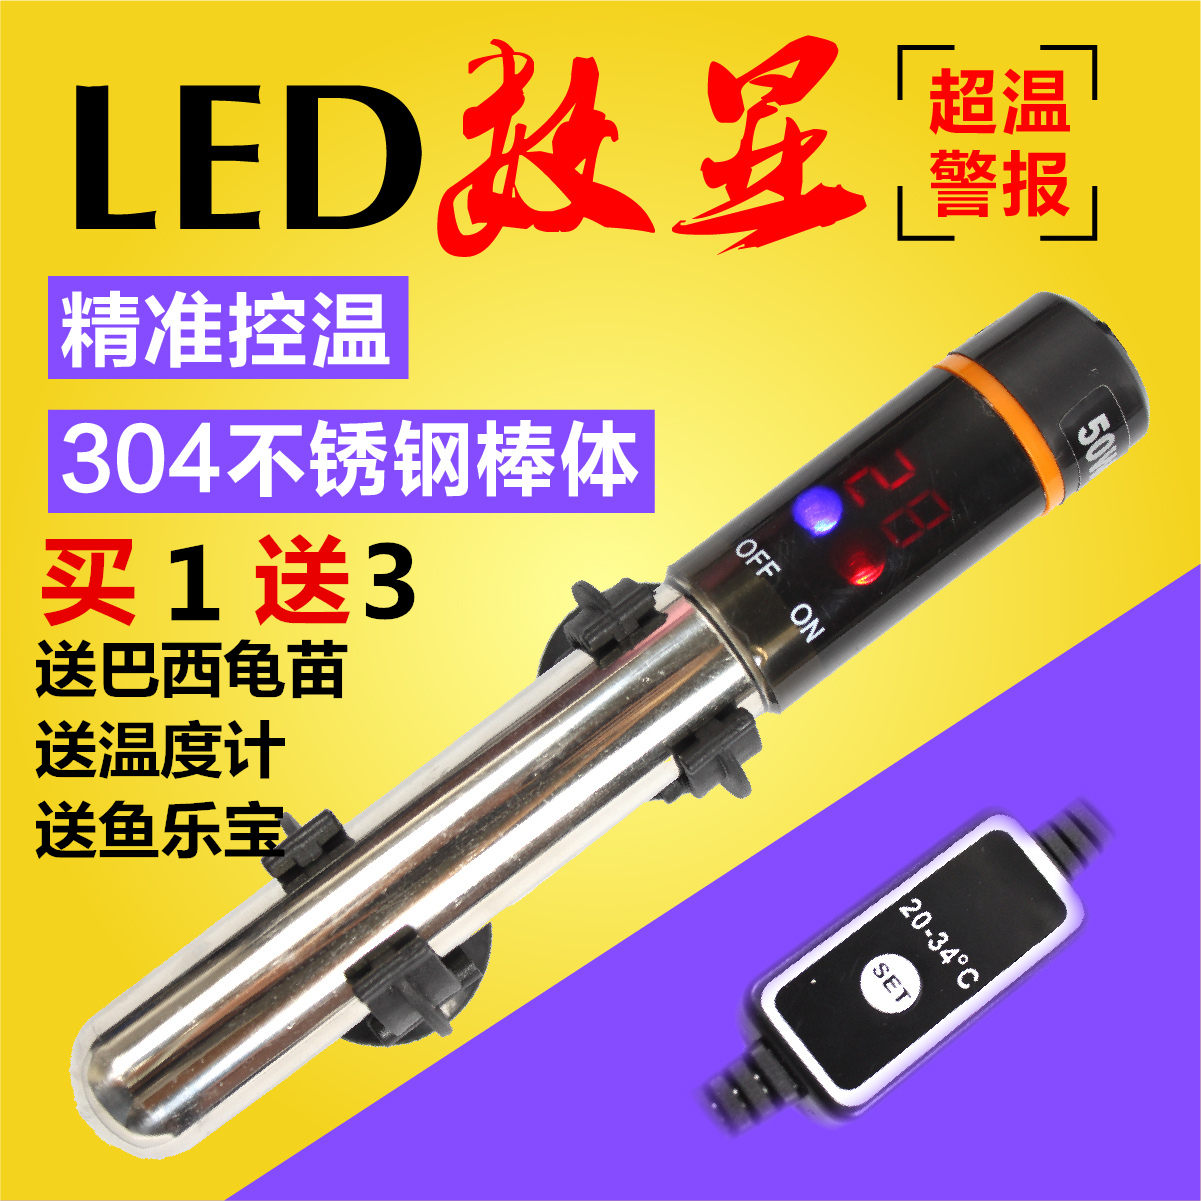 Led digital display aquarium fish tank heating rod mini stainless steel explosion automatic thermostat heating rods turtle aquarium heater